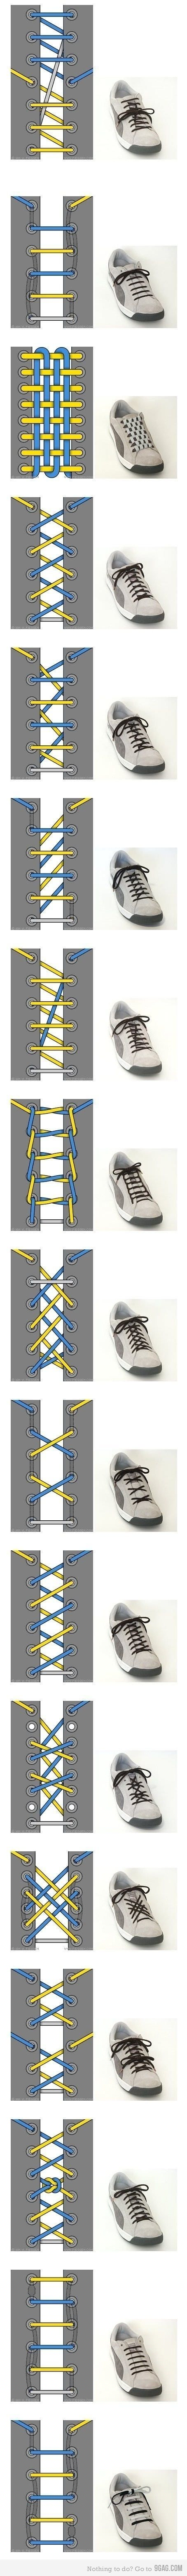 17 Ways To Tie Shoes - if you're trying to make people think you're weird.